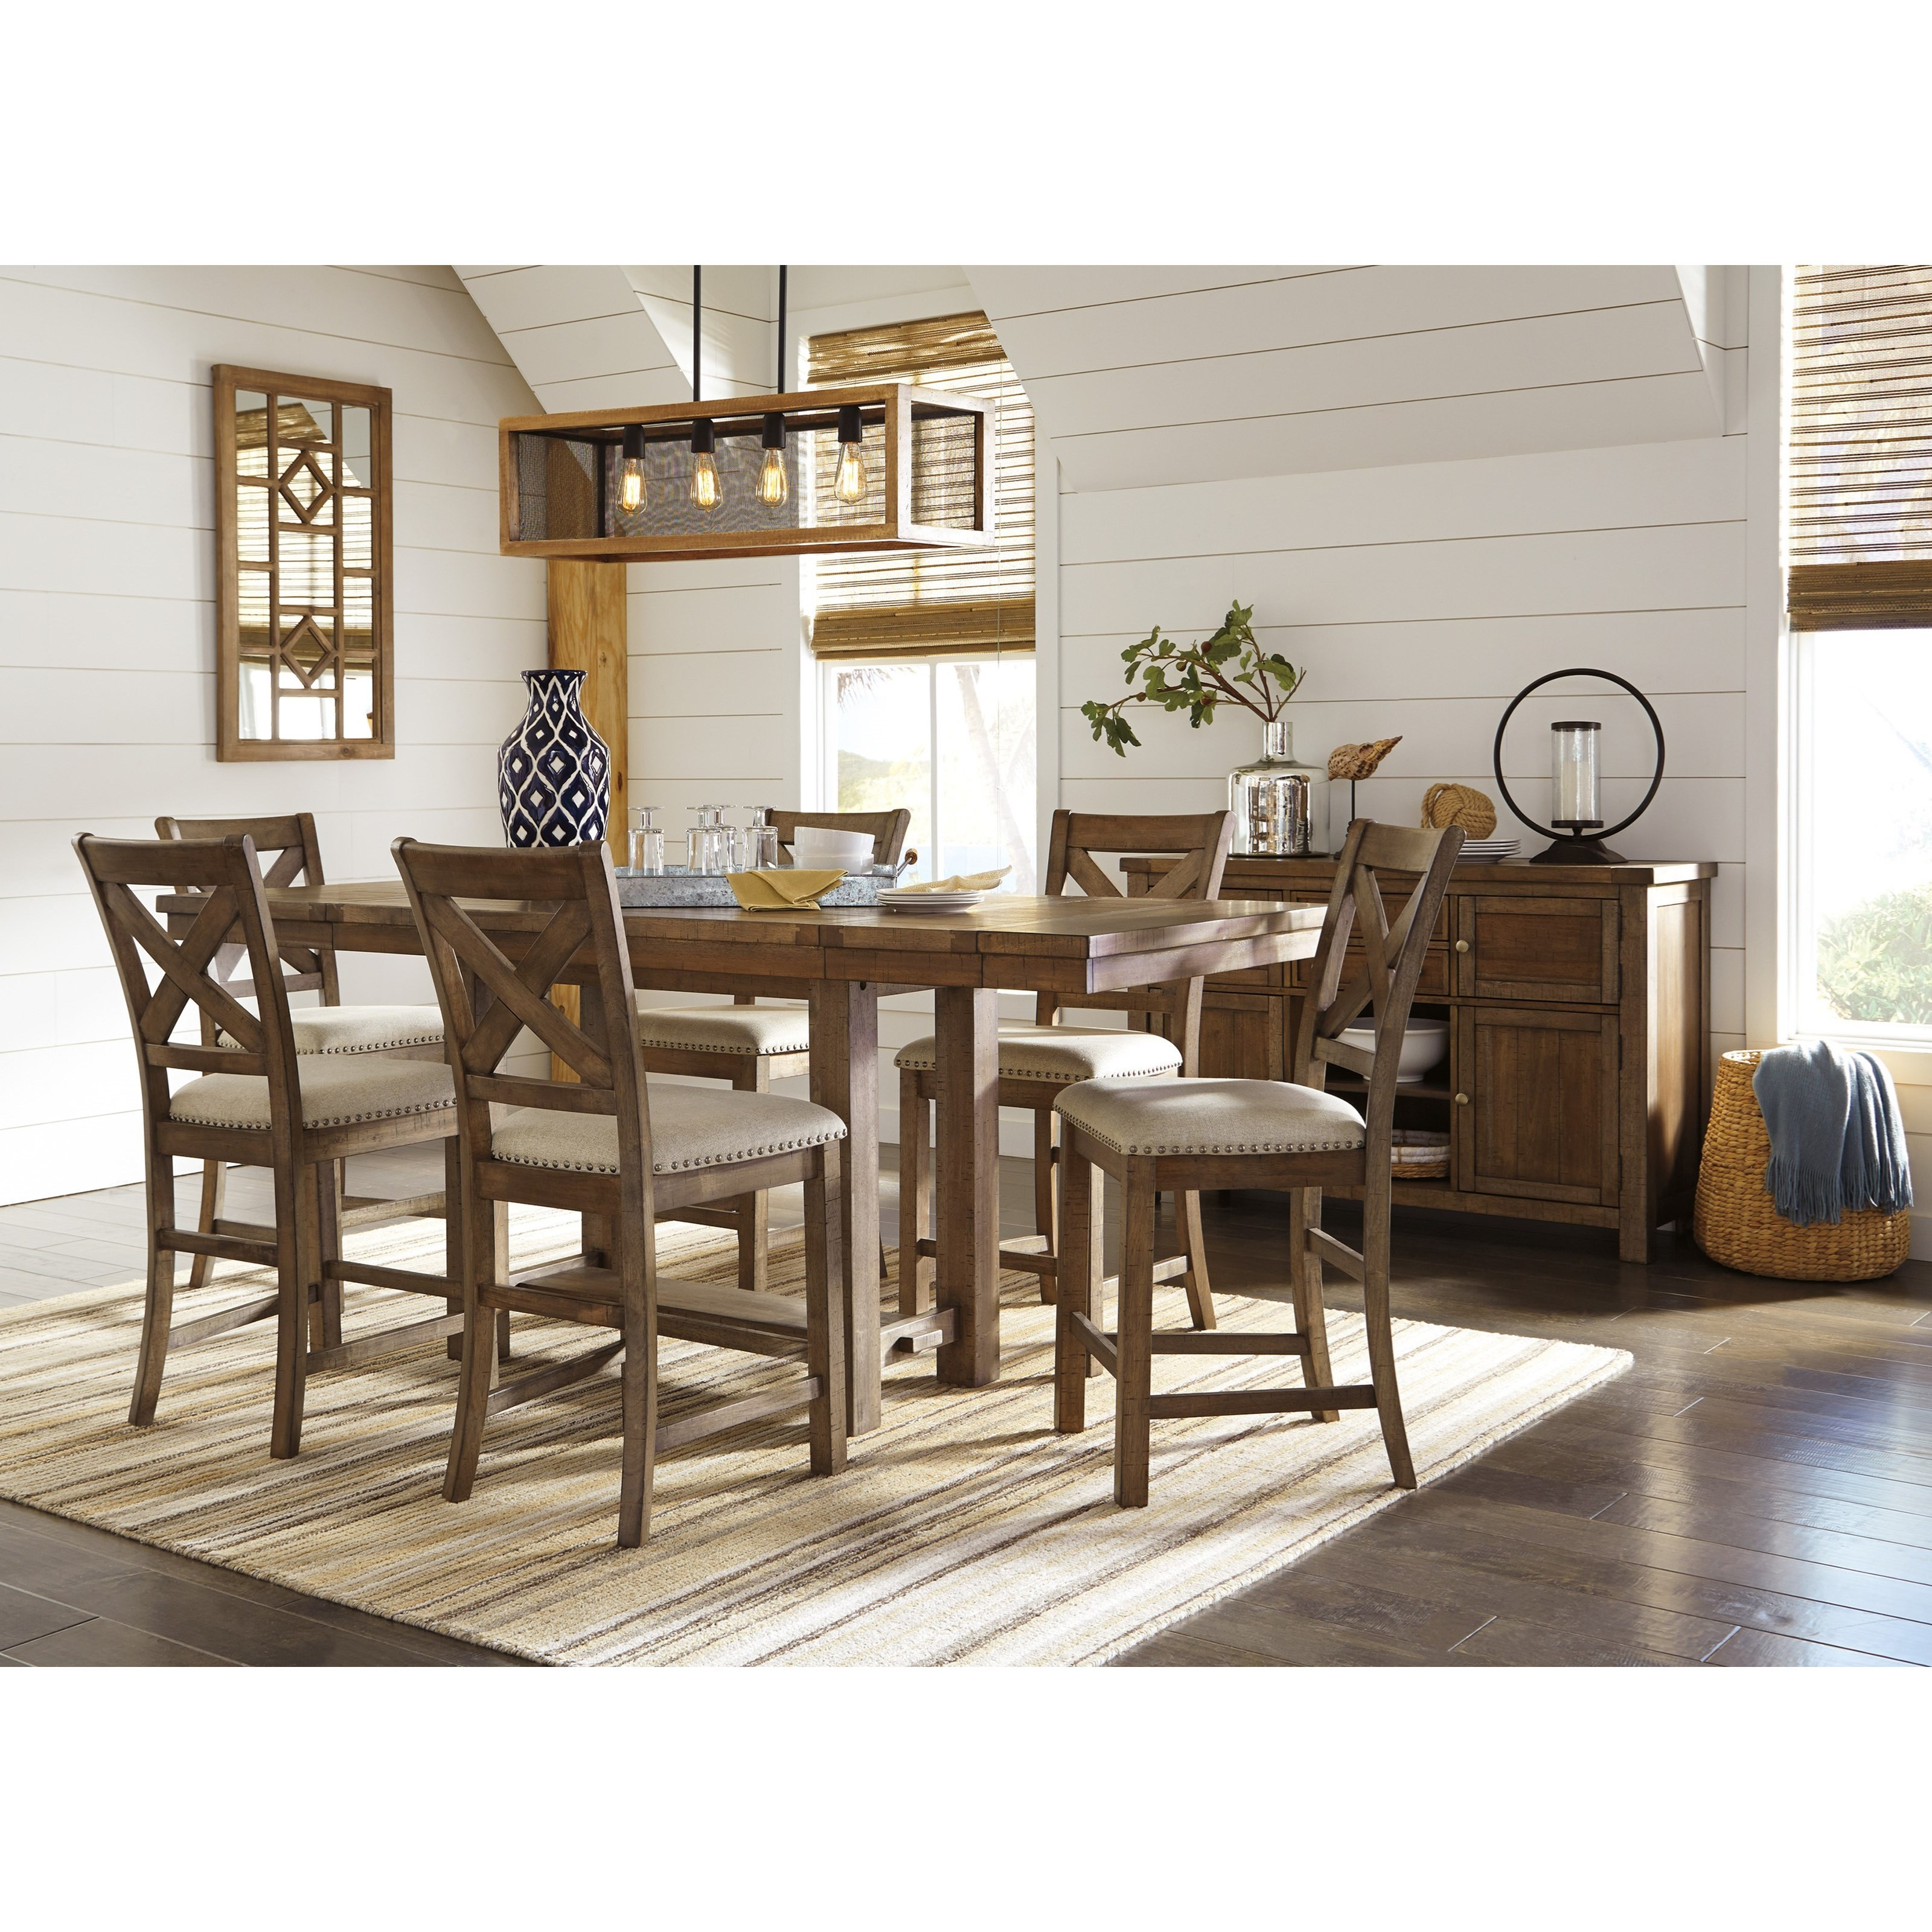 Signature Design by Ashley Moriville Casual Dining Room